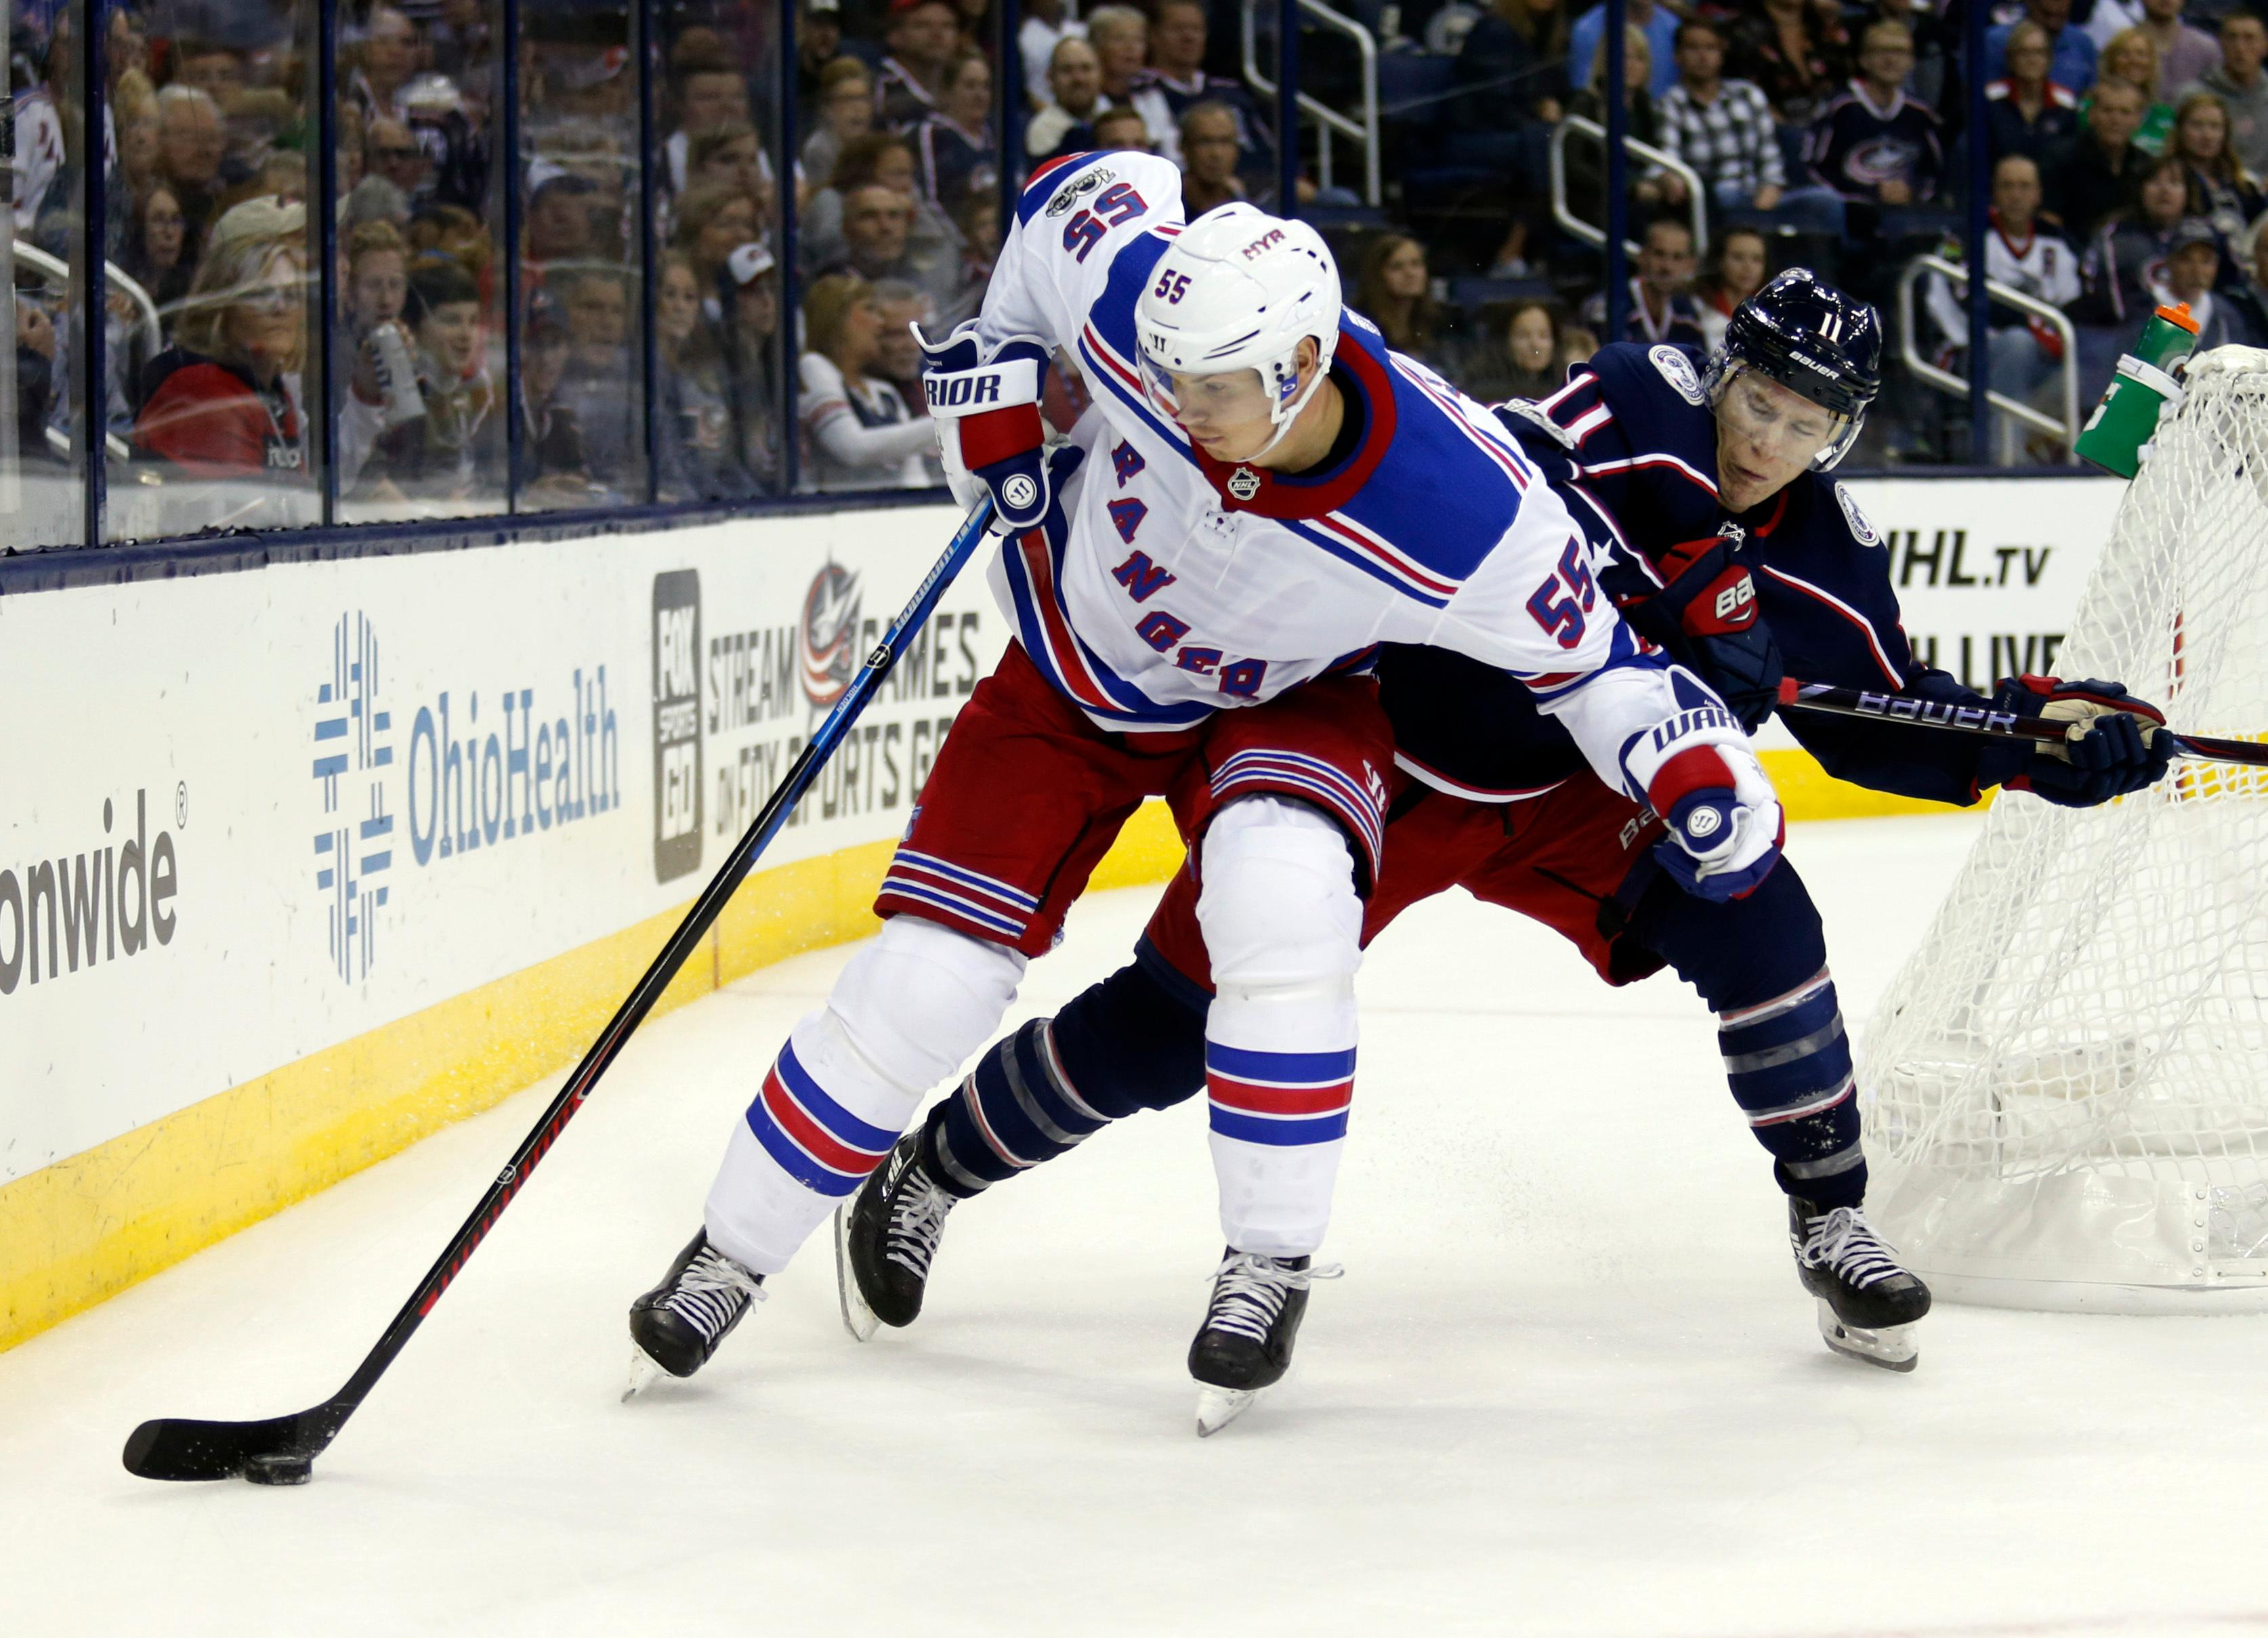 New York Rangers defenseman Nick Holden, left, works against Columbus Blue Jackets forward Matt Calvert during the second period of an NHL hockey game in Columbus, Ohio, Friday, Oct. 13, 2017. (AP Photo/Paul Vernon)